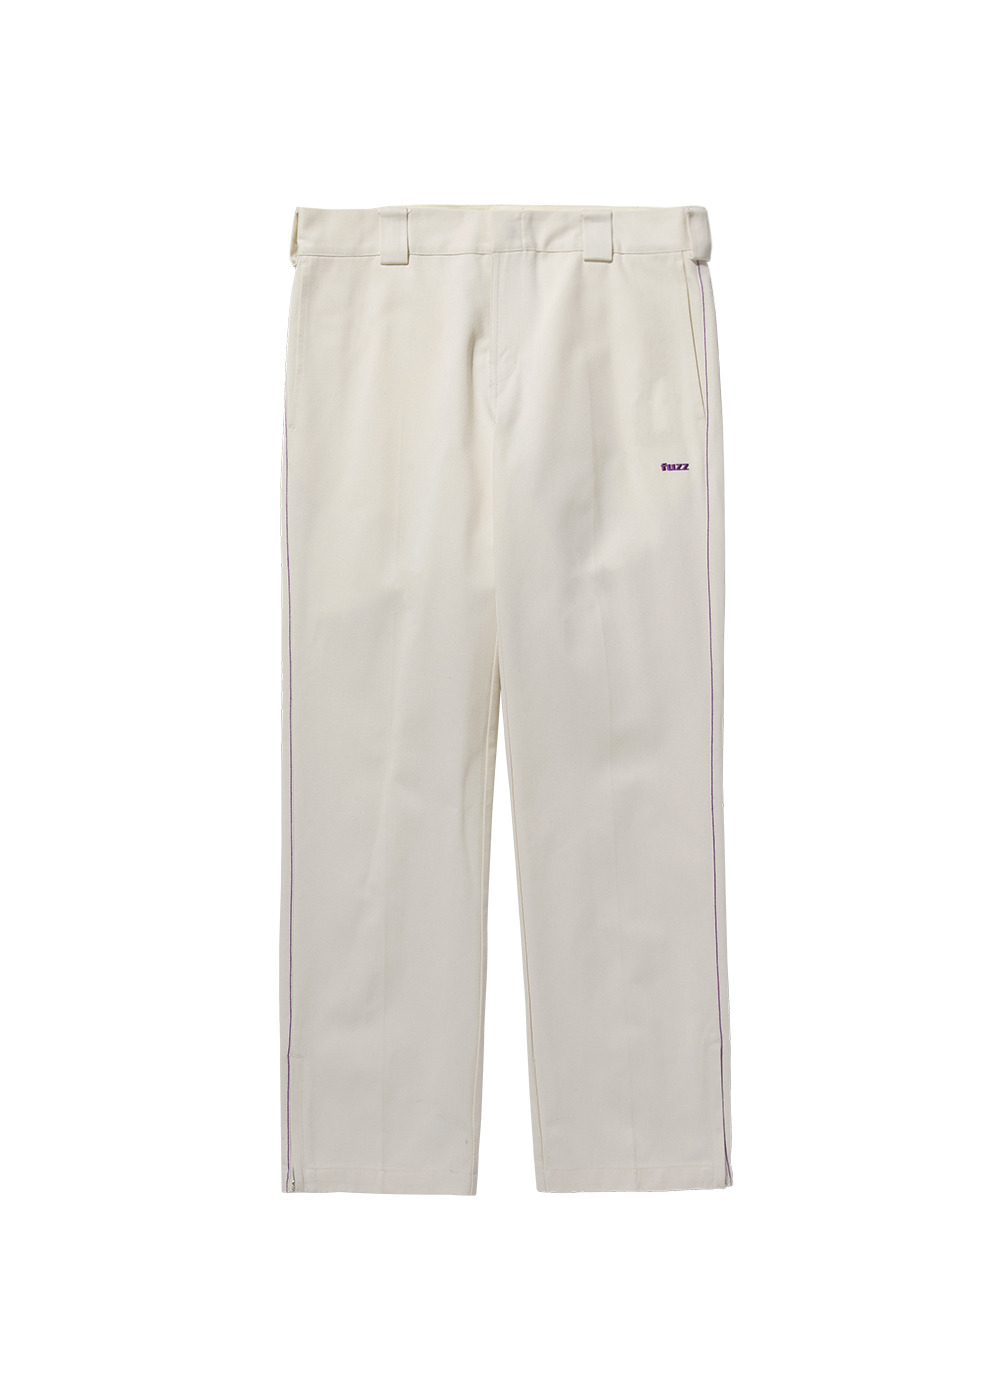 FUZZ SIDE ZIP PANTS cream